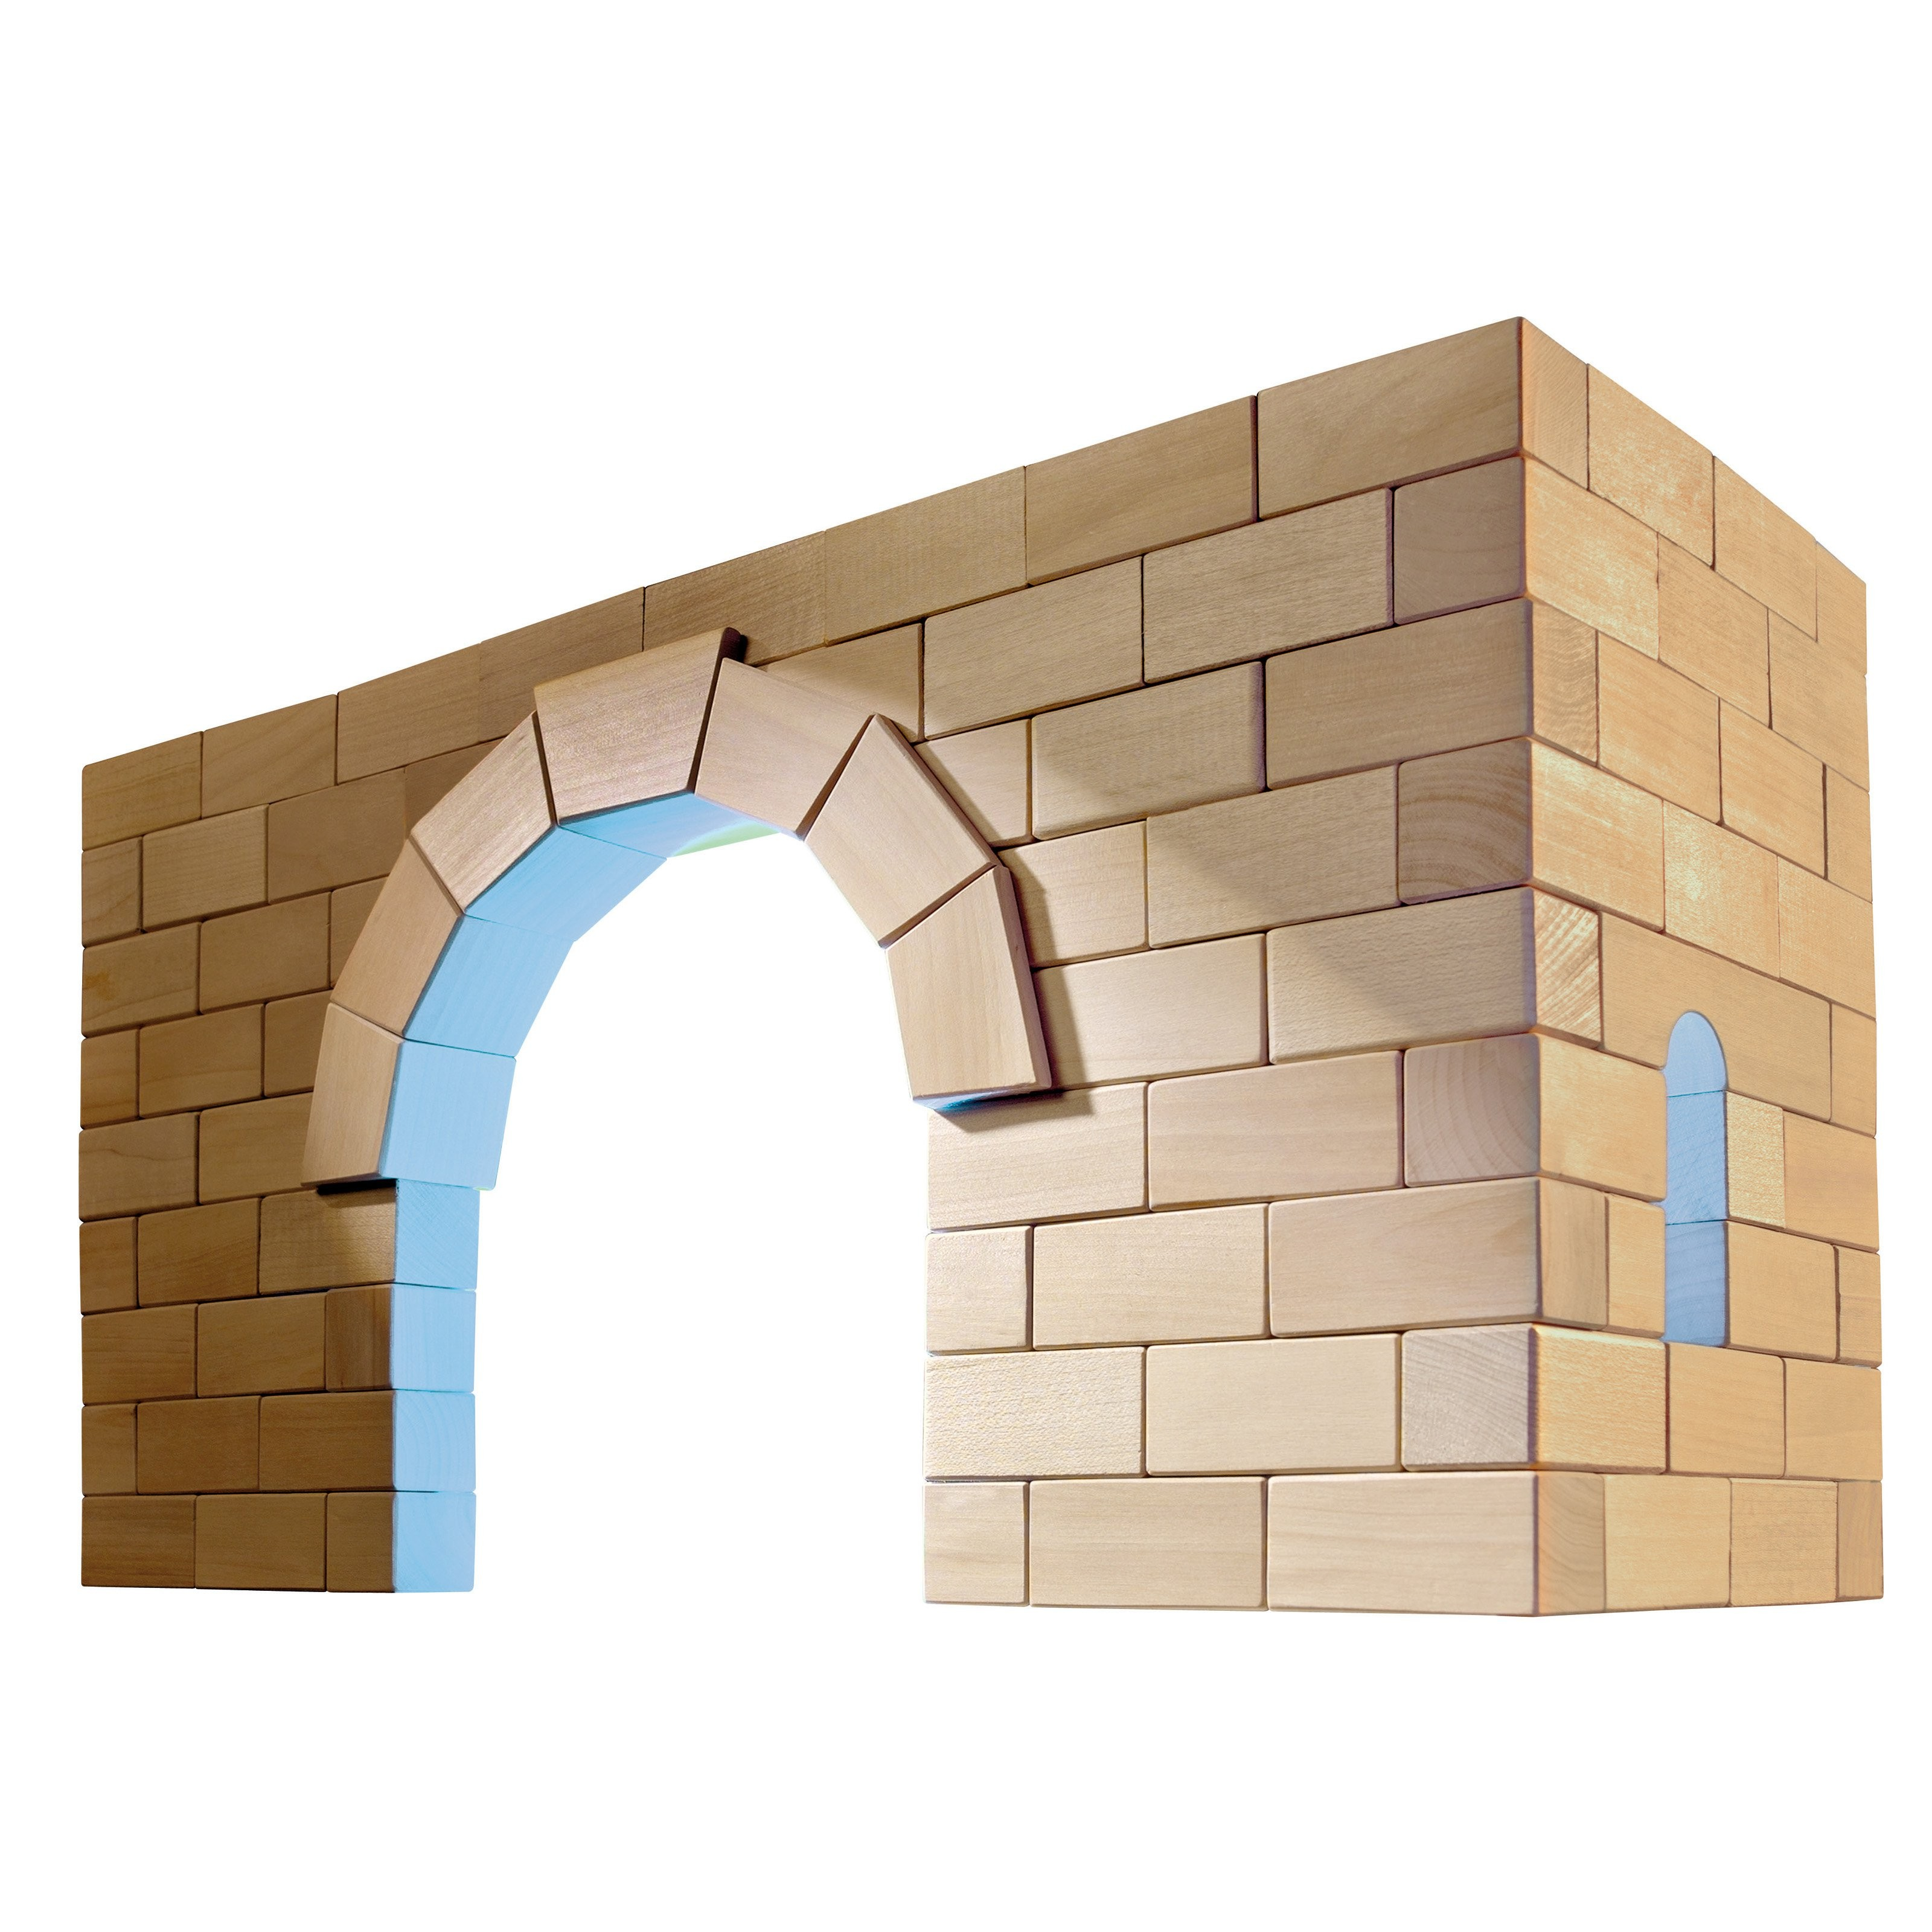 Haba Roman Arch Architectural Building Blocks House Of